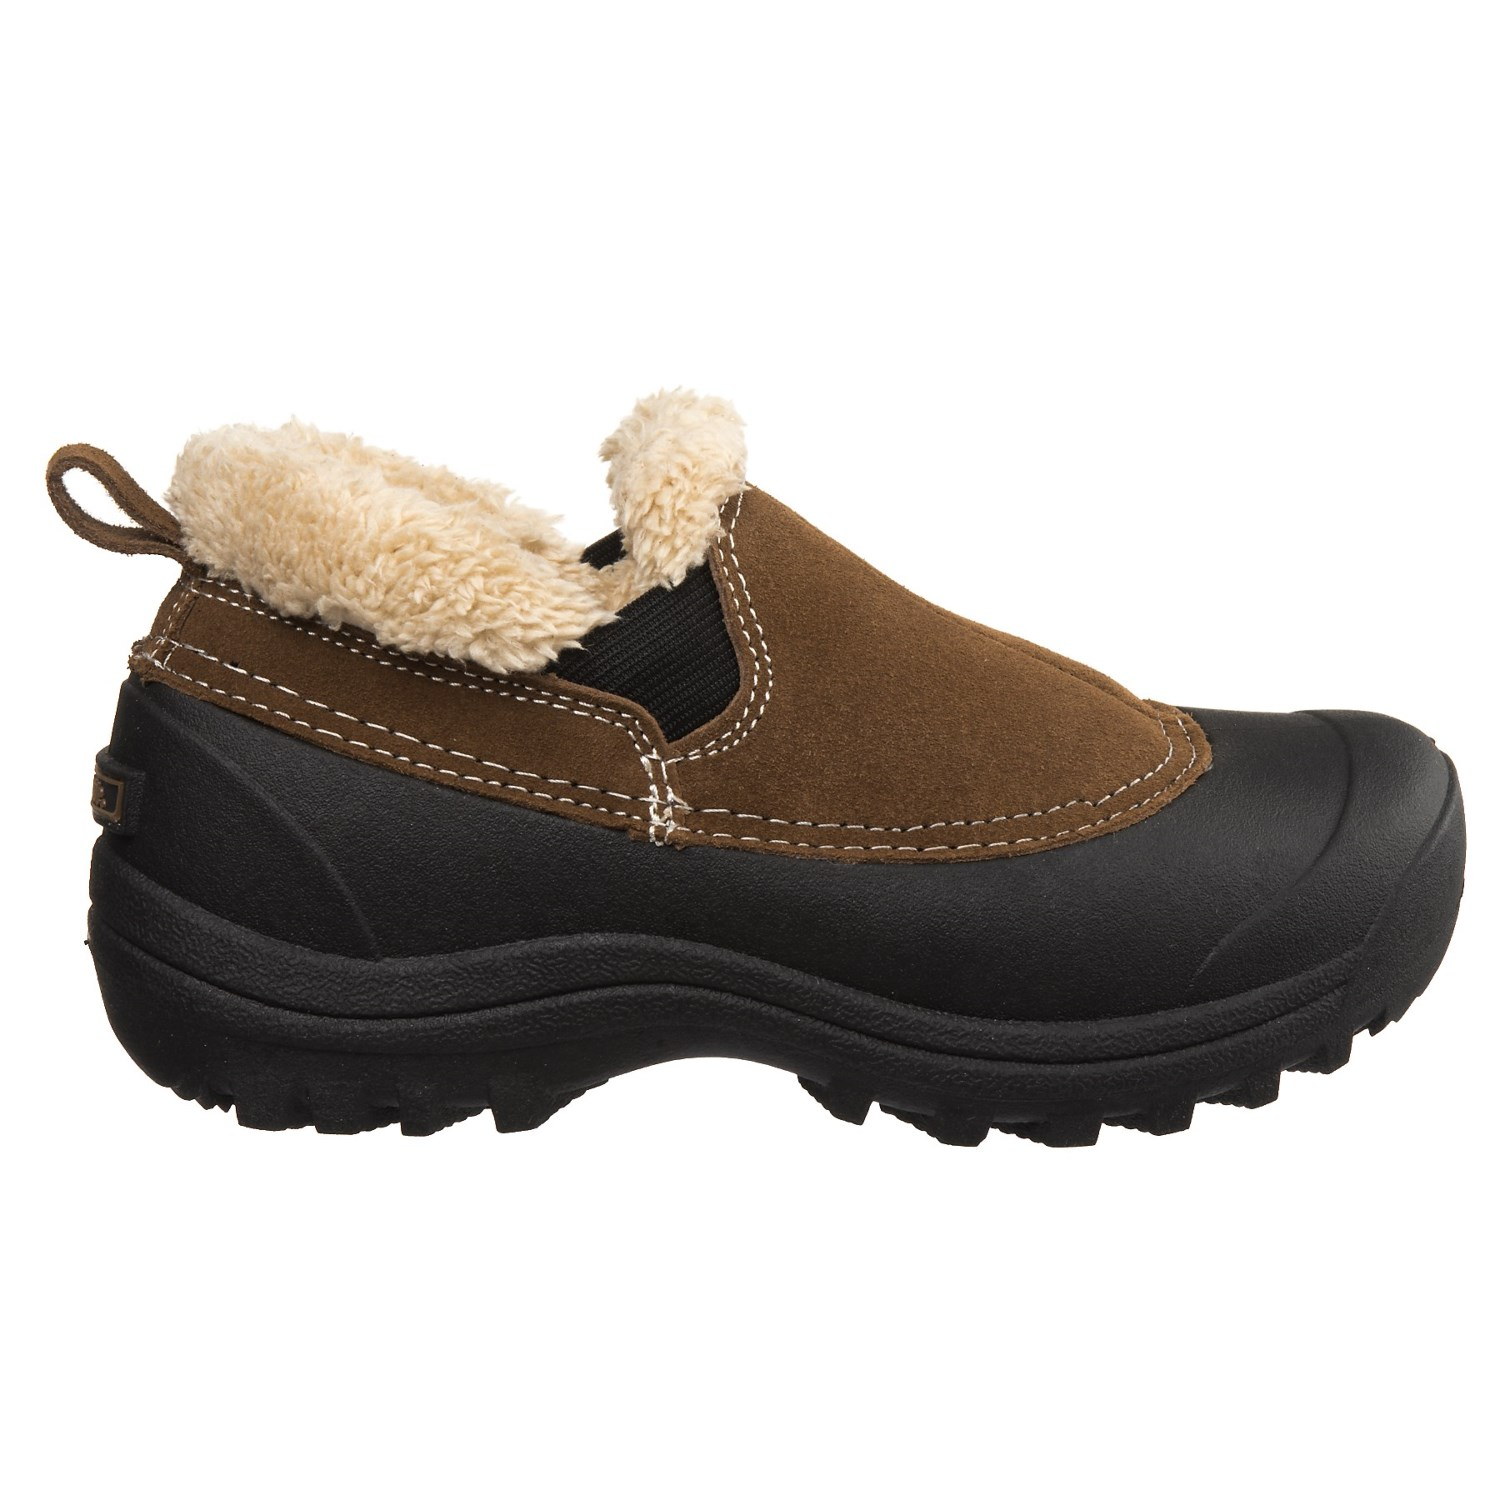 Northside Kayla Low Pac Boots For Women Save 49